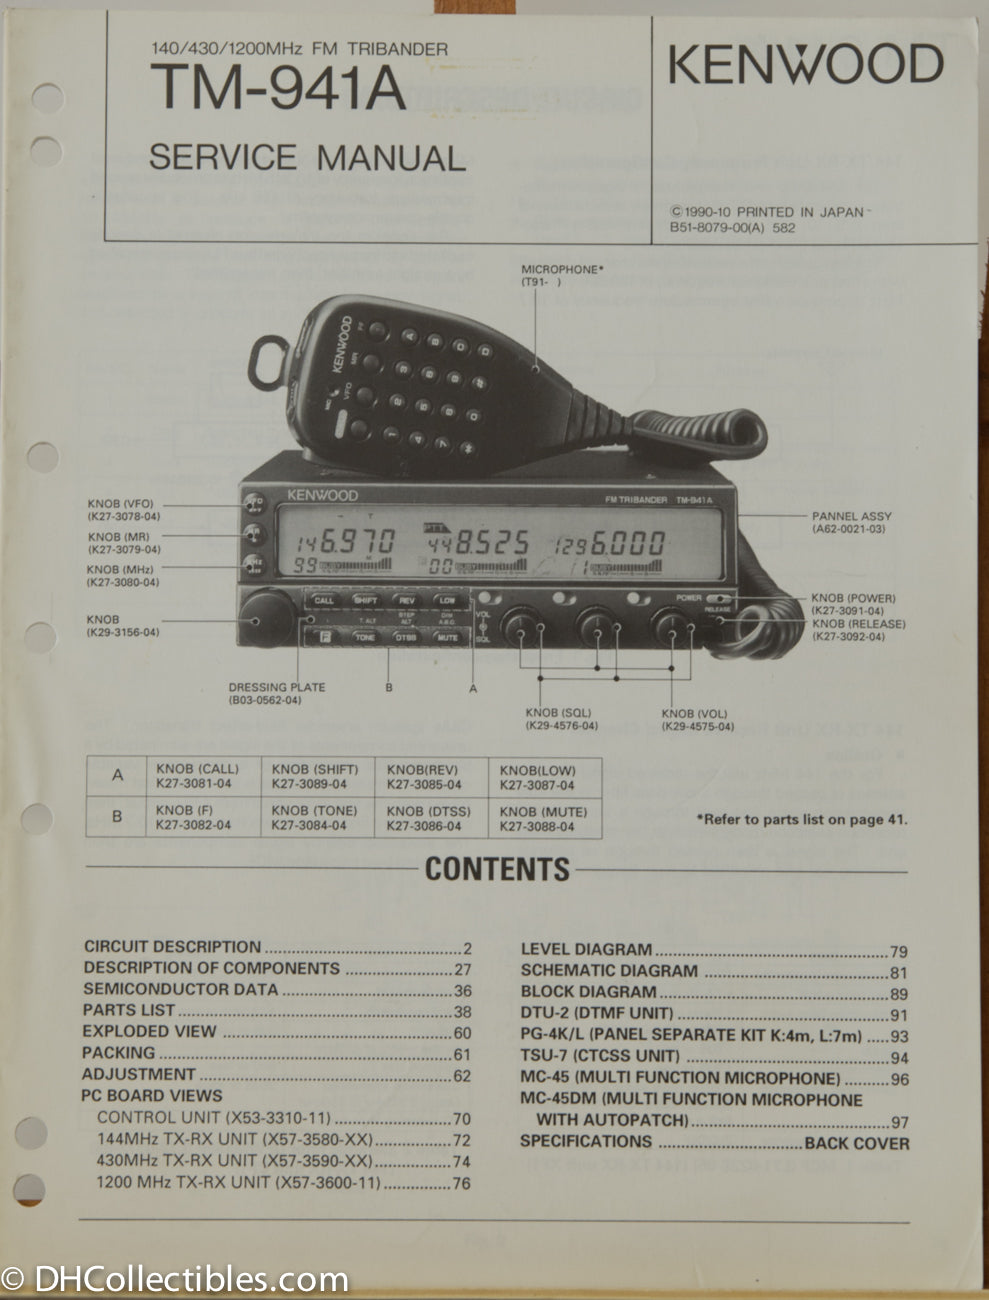 Kenwood TM-941A Amateur Radio Service Manual